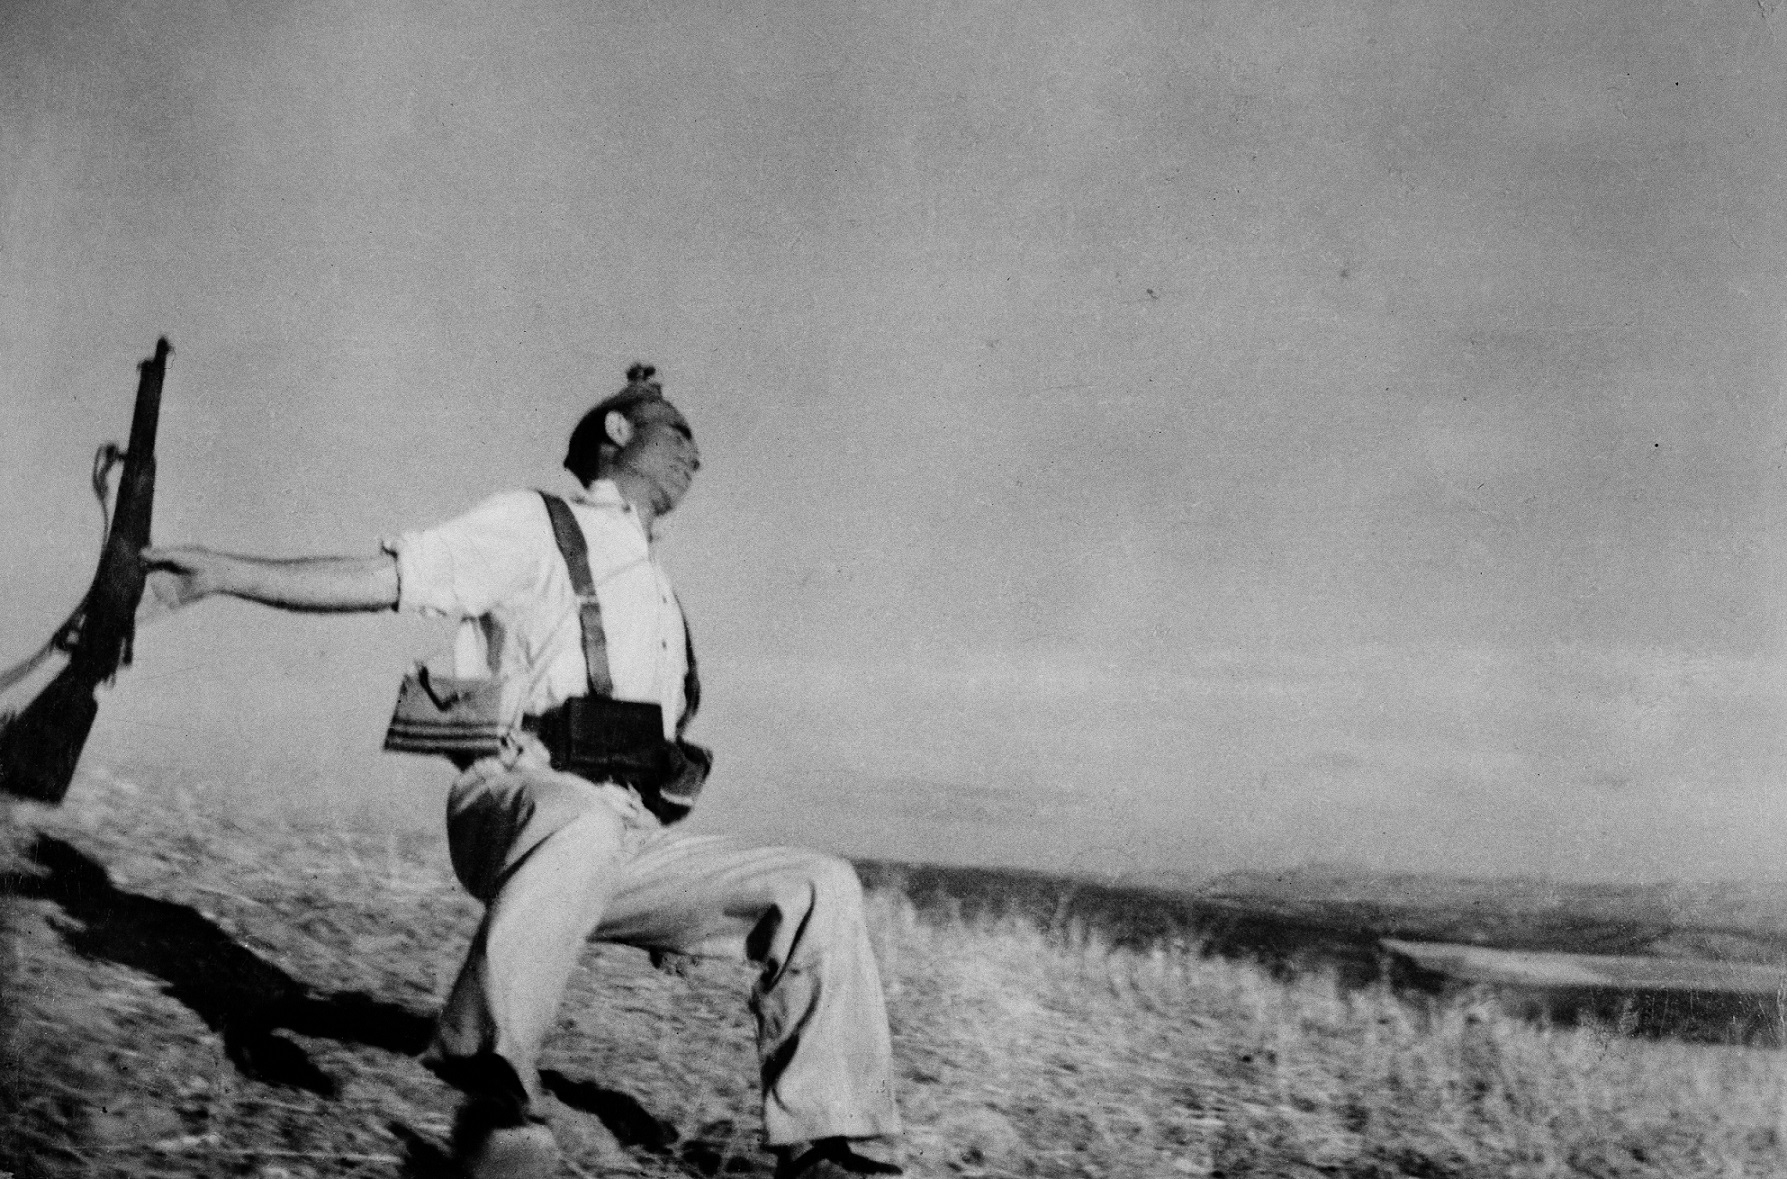 Death of a loyalist militiaman, Cordoba Front, early September 1936 © Robert Capa © International Center of Photography/Magnum Photos